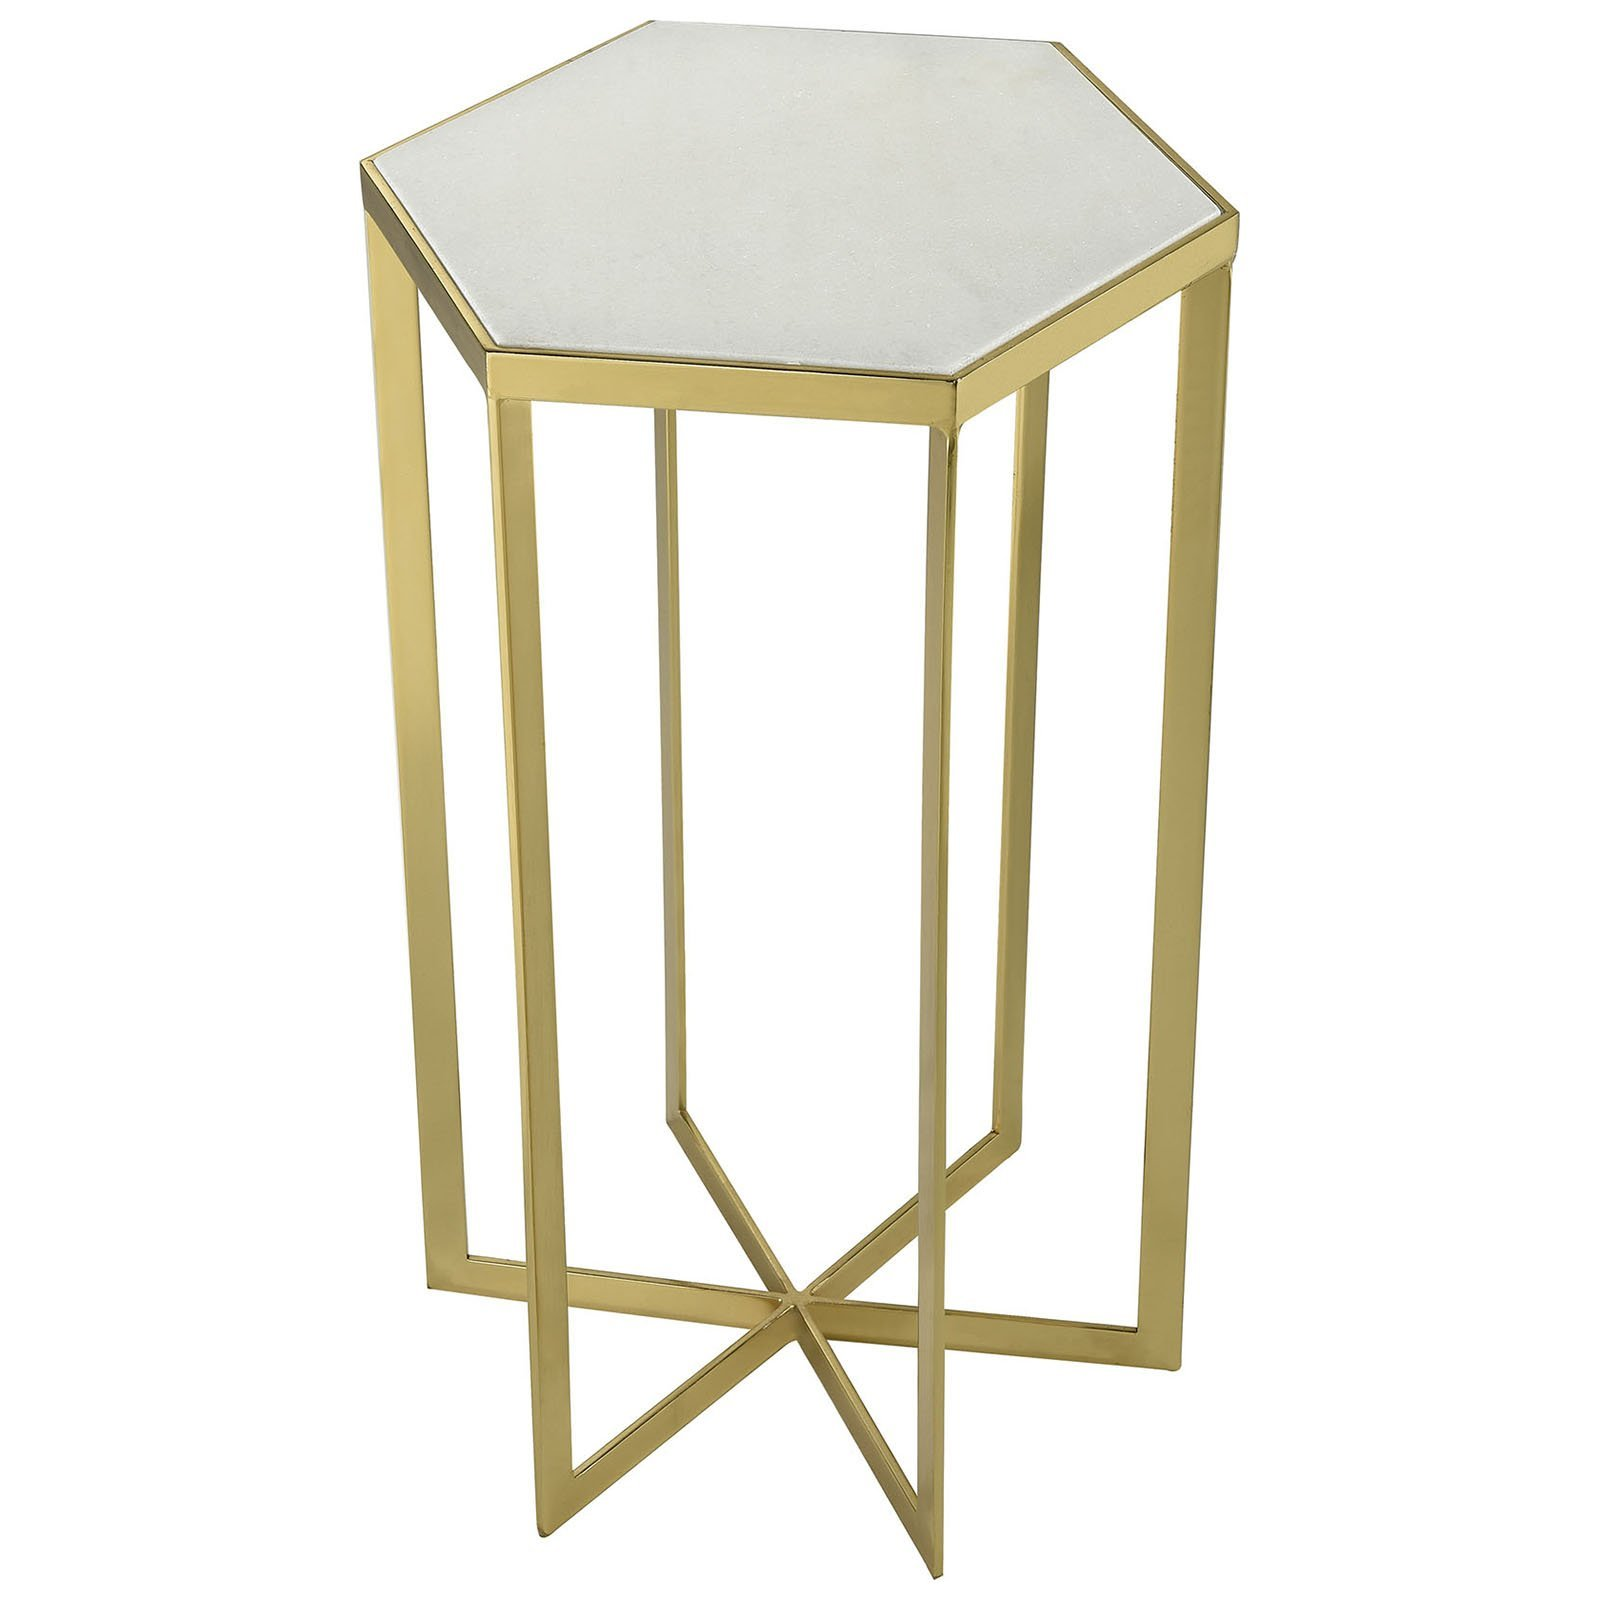 halter contemporary accent tables gold fratantoni lifestyles plated metal table with genuine white marble top strip between carpet and wood bathroom tub wicker furniture set